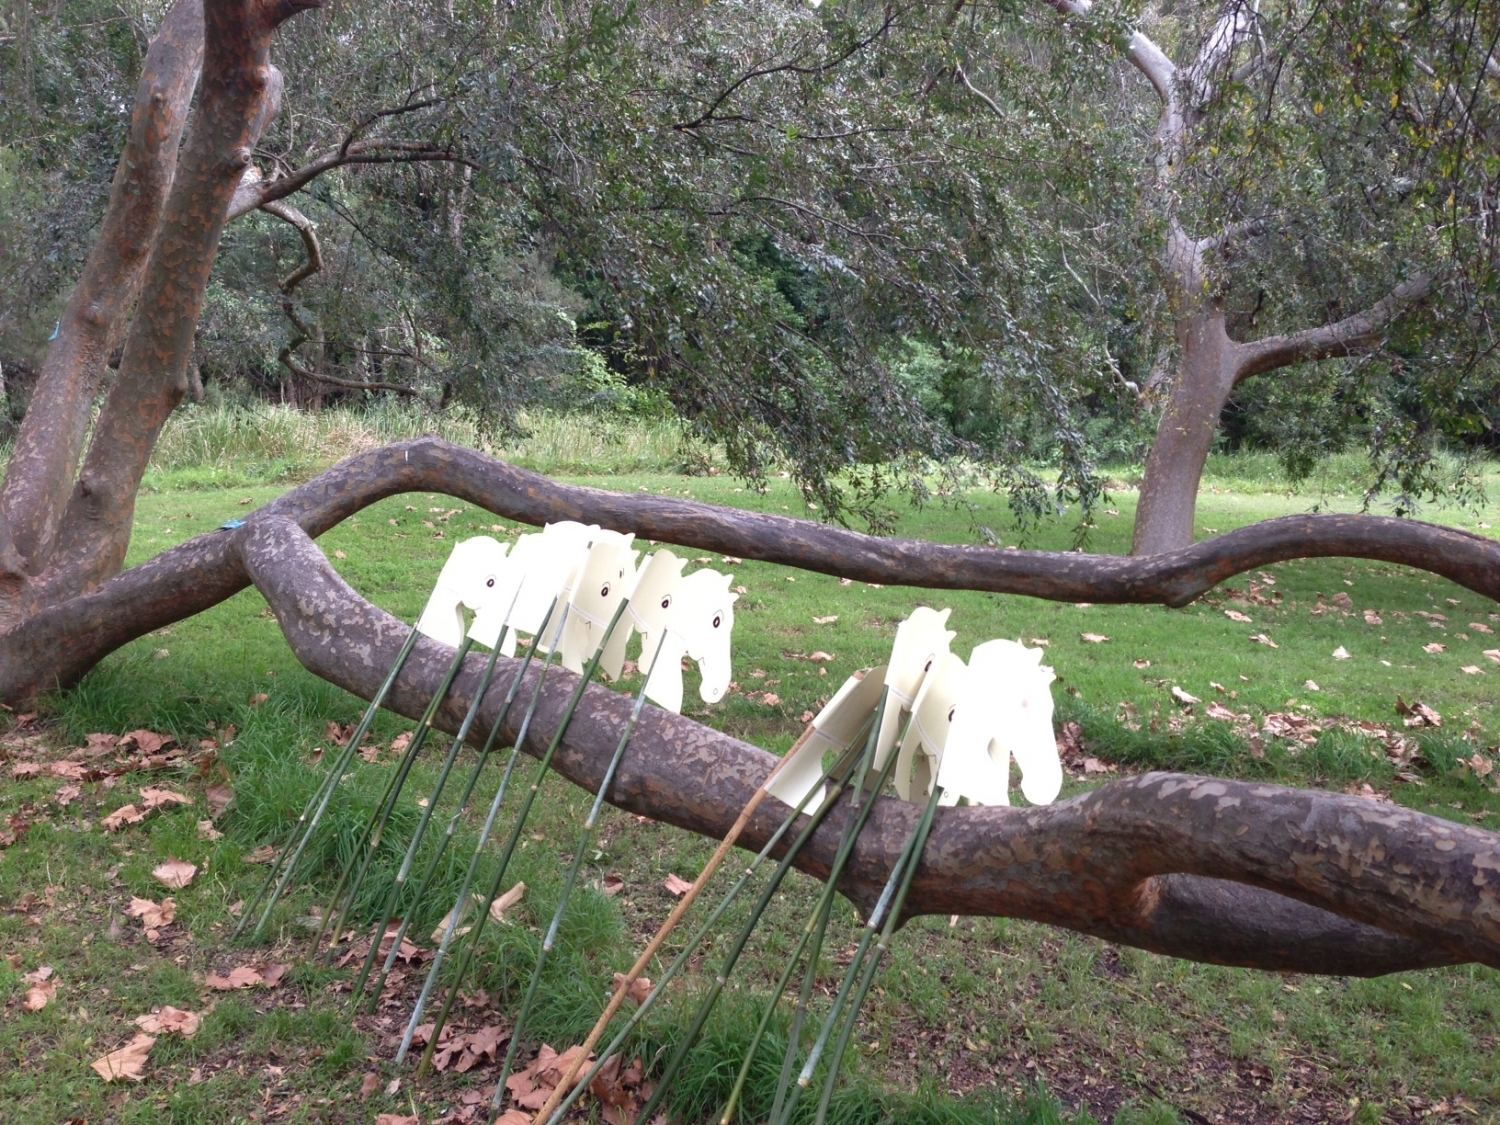 Hobby horses leaning against a tree, ready for kids to ride